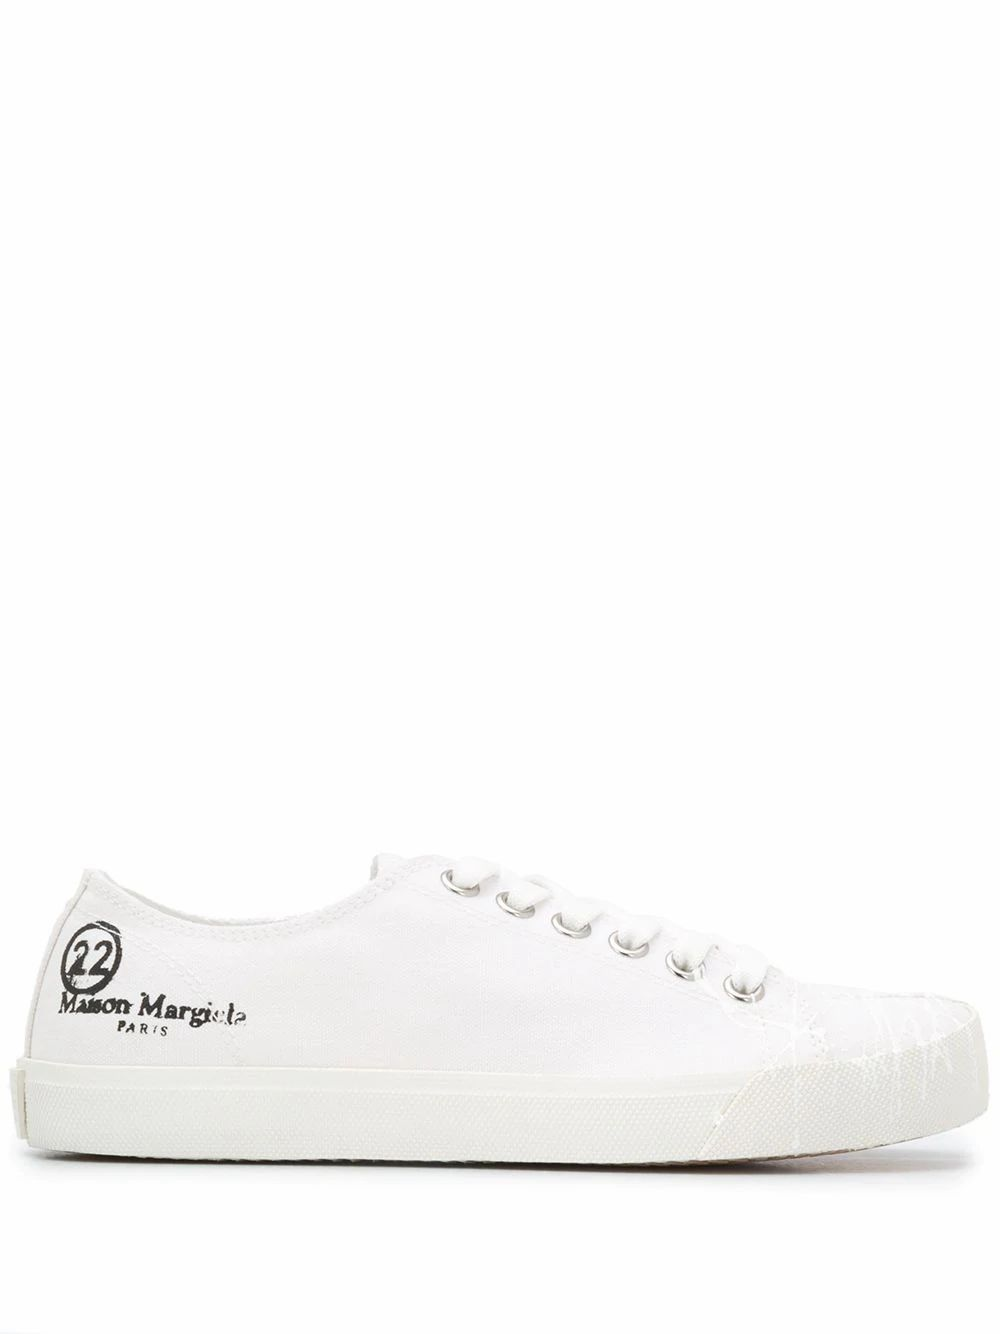 Maison Margiela Leathers MAISON MARGIELA WOMEN'S WHITE COTTON SNEAKERS